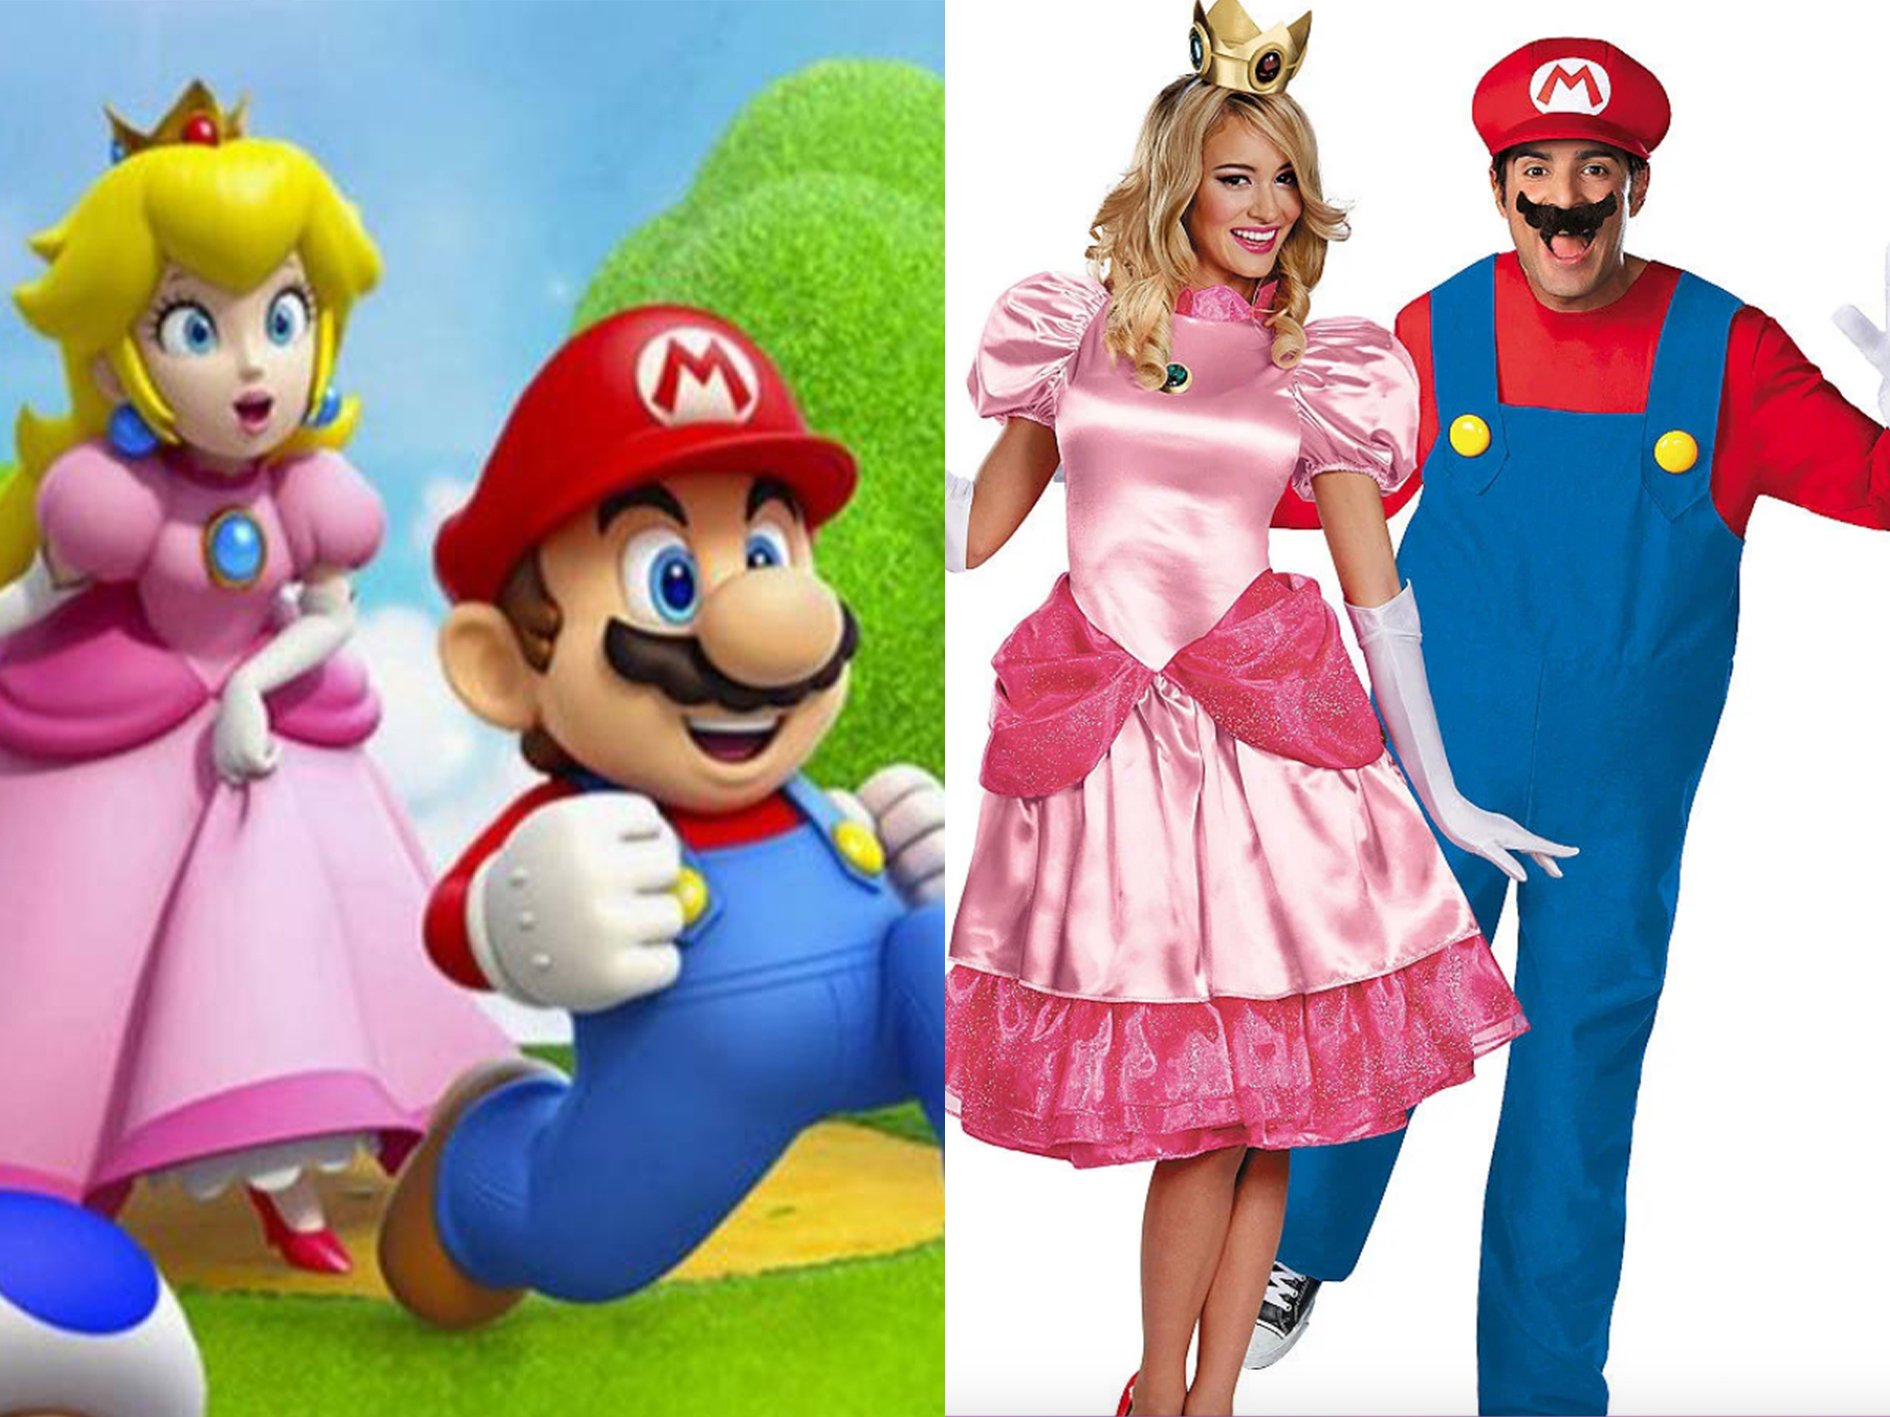 MARIO AND PEACH 15 Halloween Costumes Inspired By The 80s - Who Will You Go As?